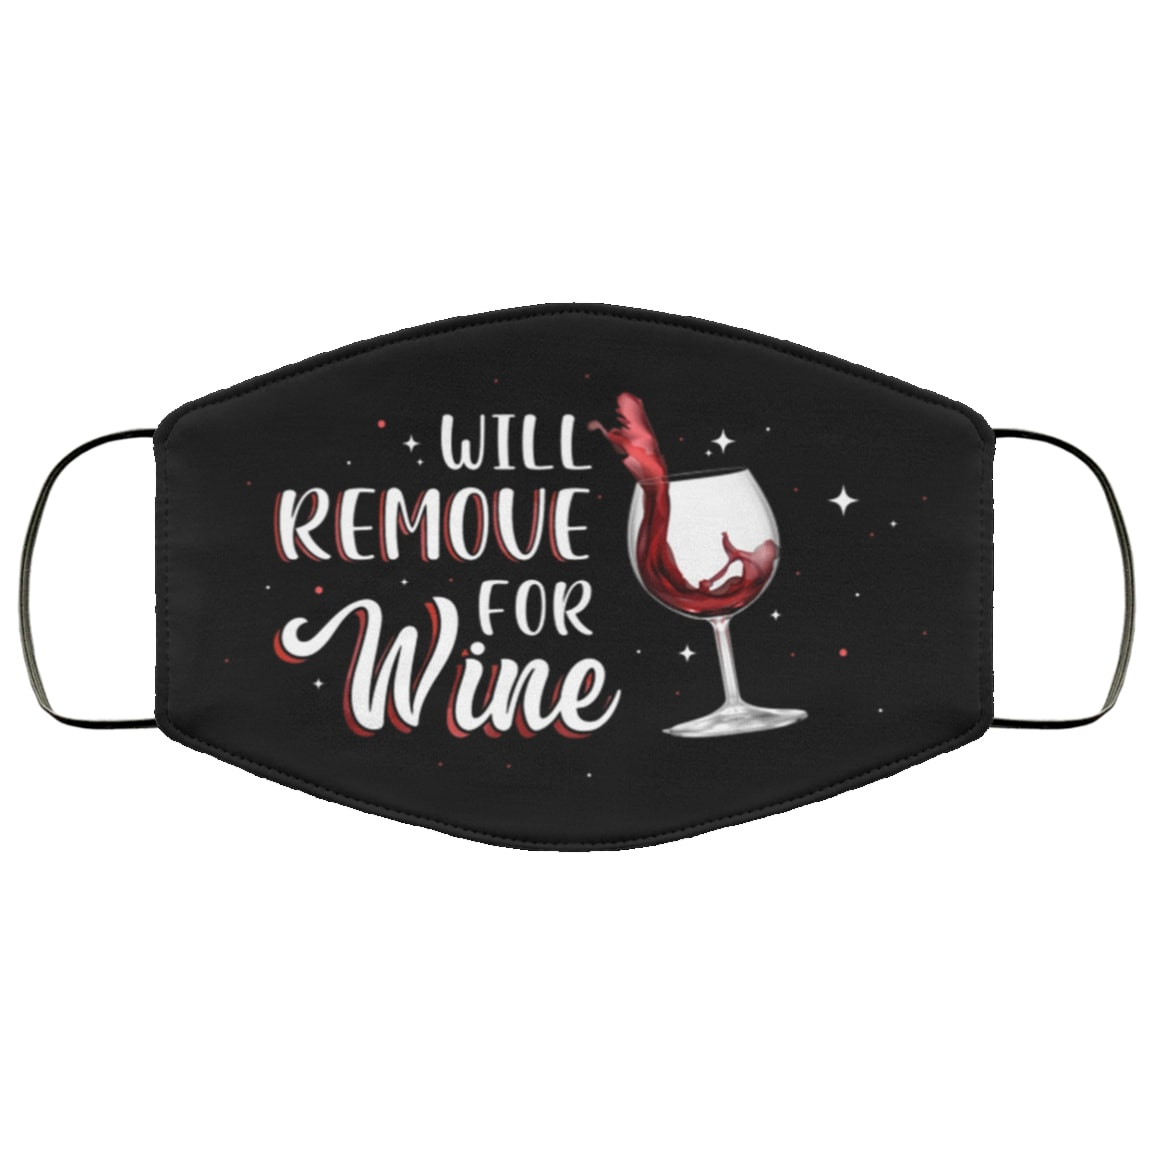 Will remove for wine anti pollution face mask 4